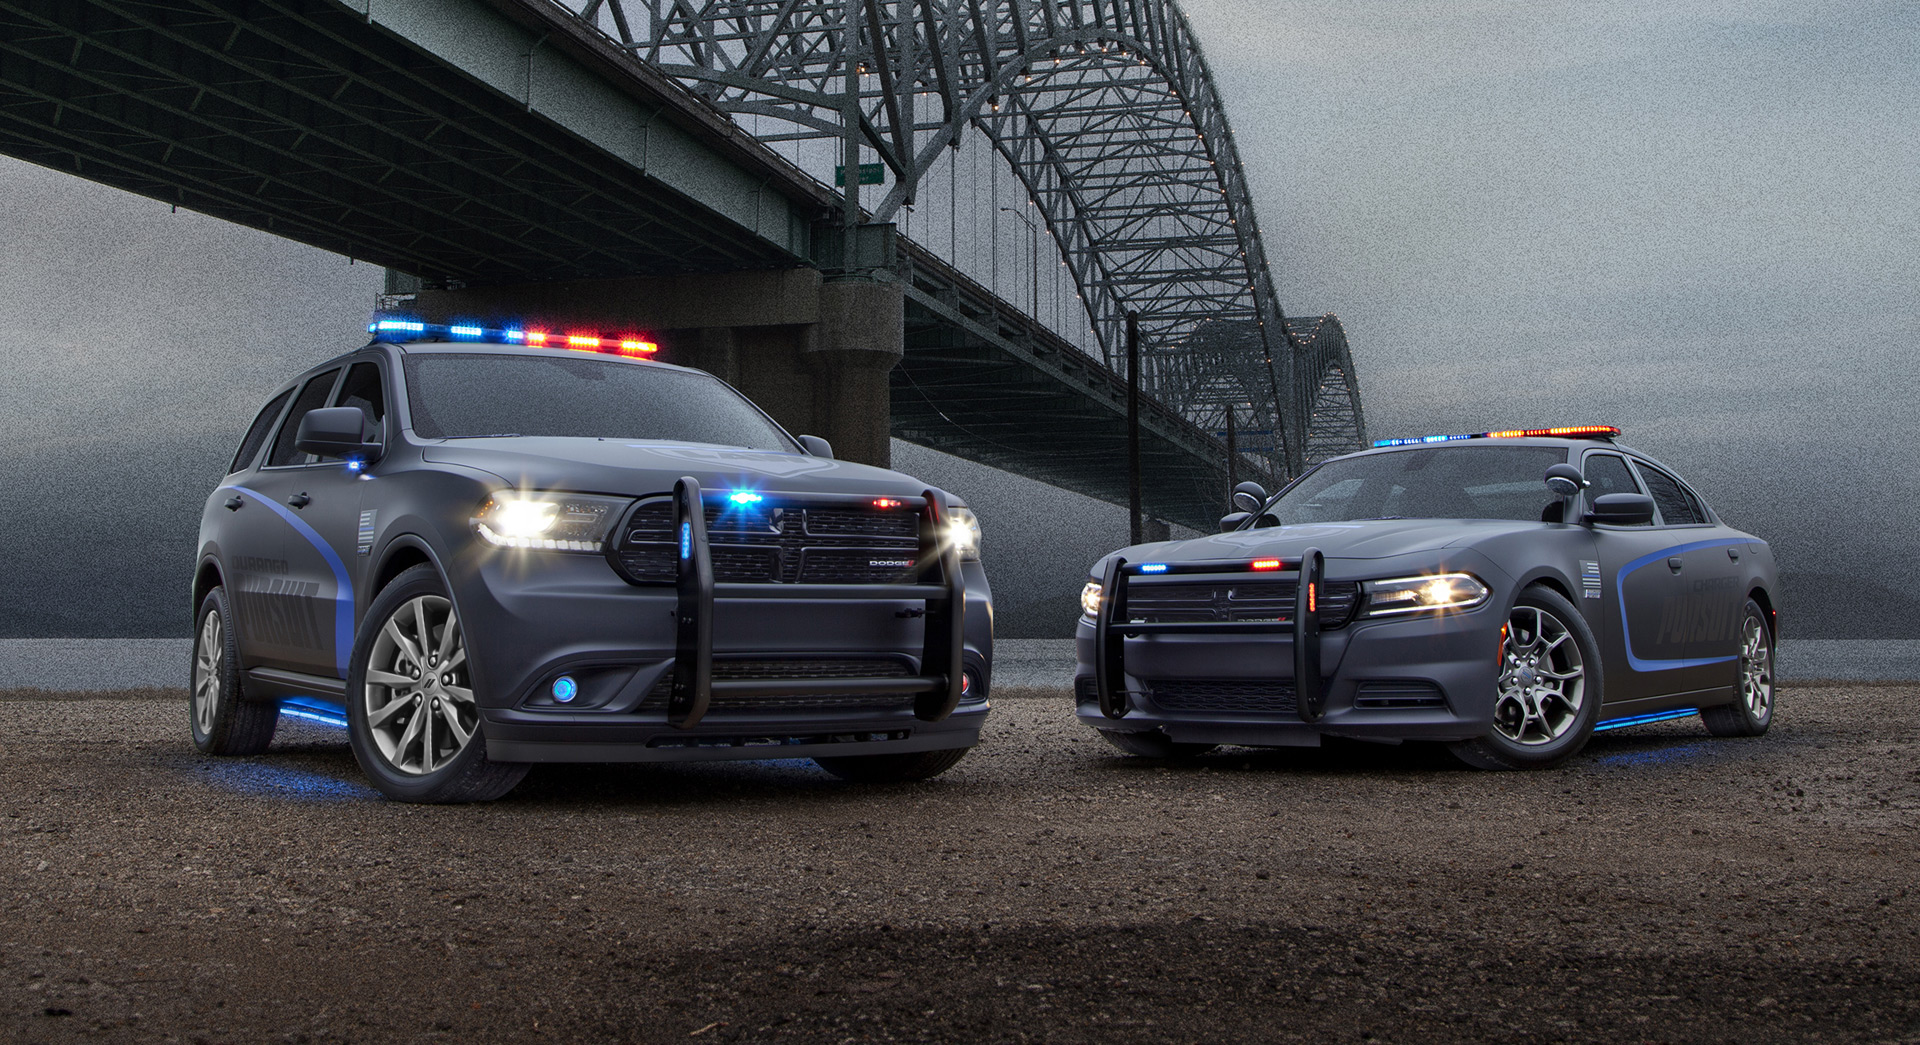 Durango Pursuit joins Dodge's police fleet offerings